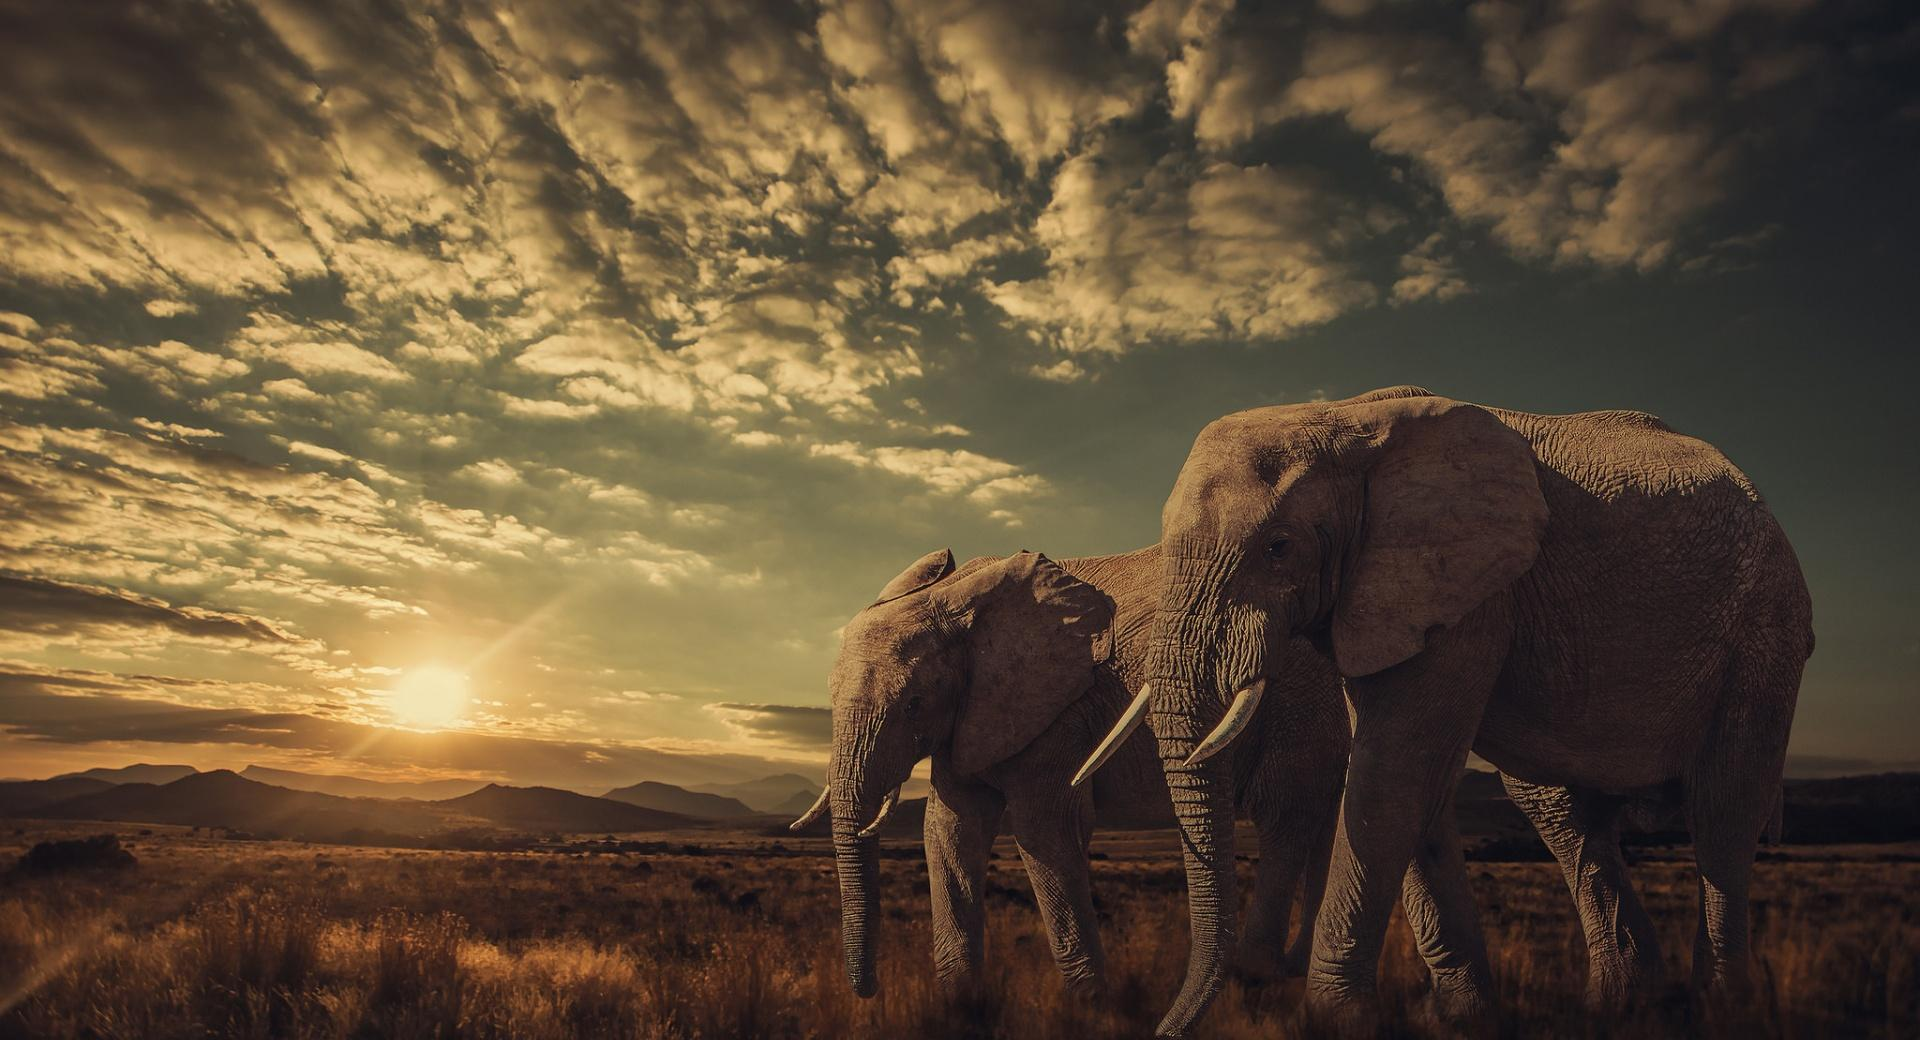 Elephants, Sunset, Nature wallpapers HD quality